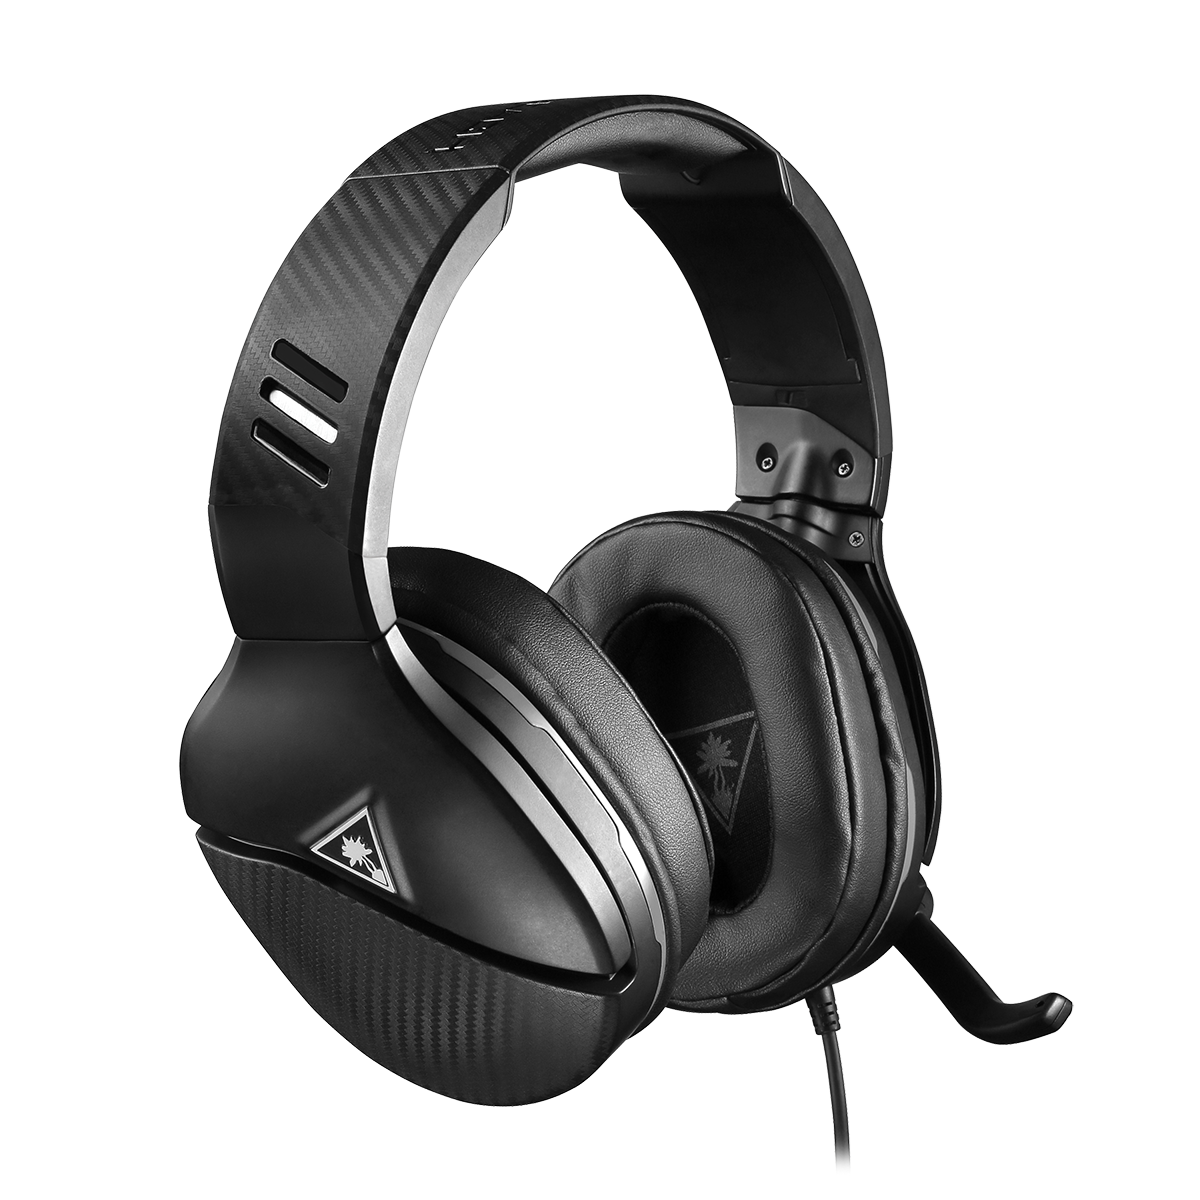 Recon 200 Gaming Headset Turtle Beach